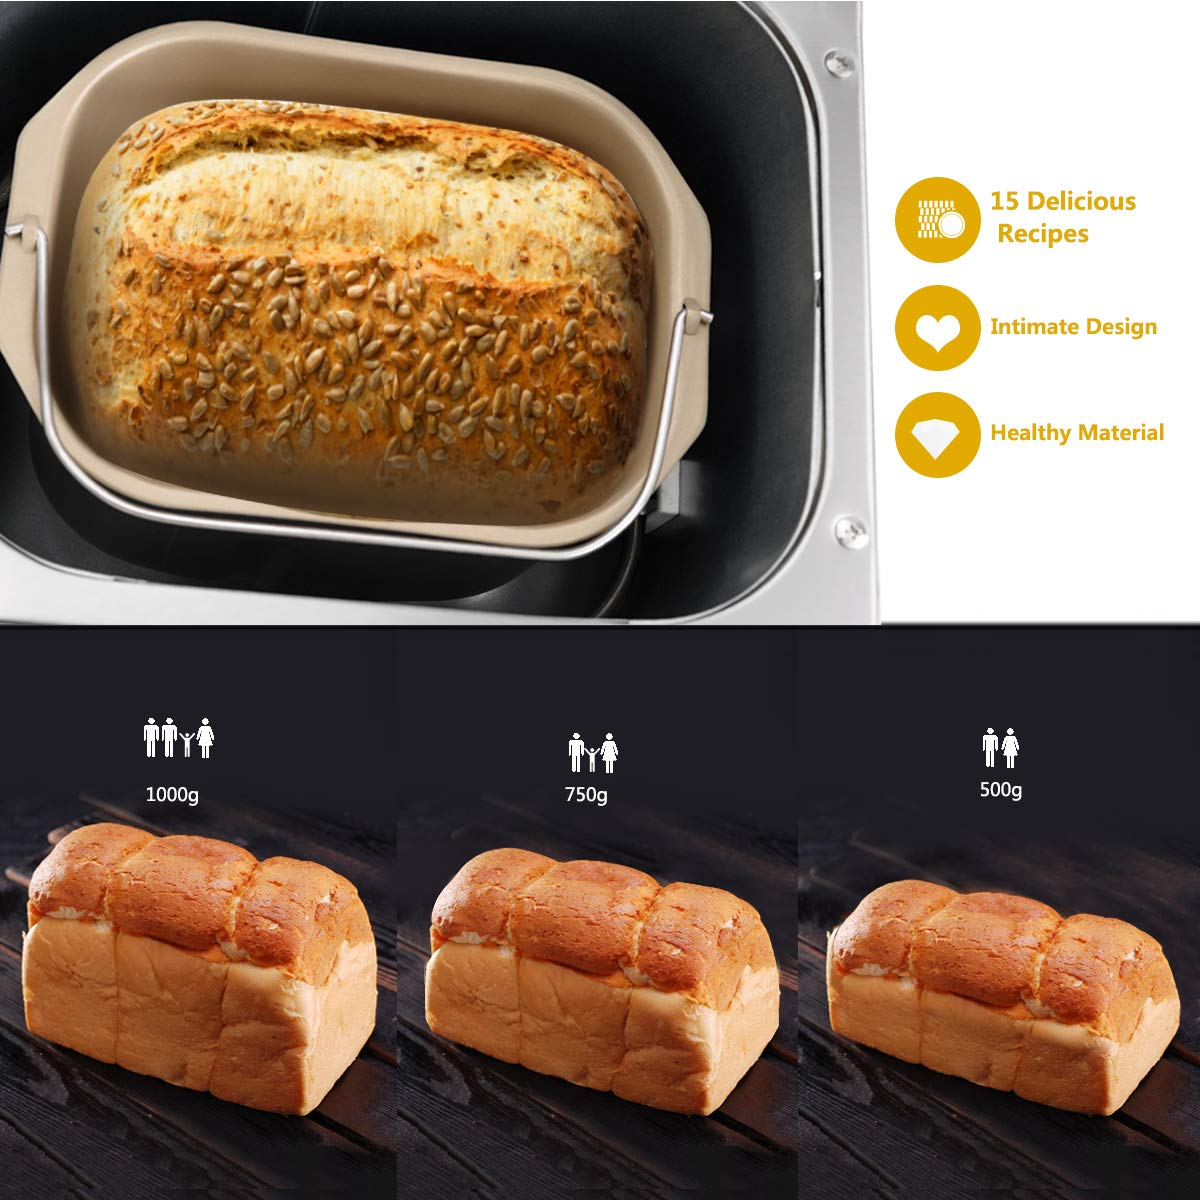 COSTWAY Automatic Bread Maker Stainless Steel Programmable Multifunctional Bread  Machine with 15 Programs, 3 Loaf Sizes, 3 Crust Colors, 15 Hours Delay ...